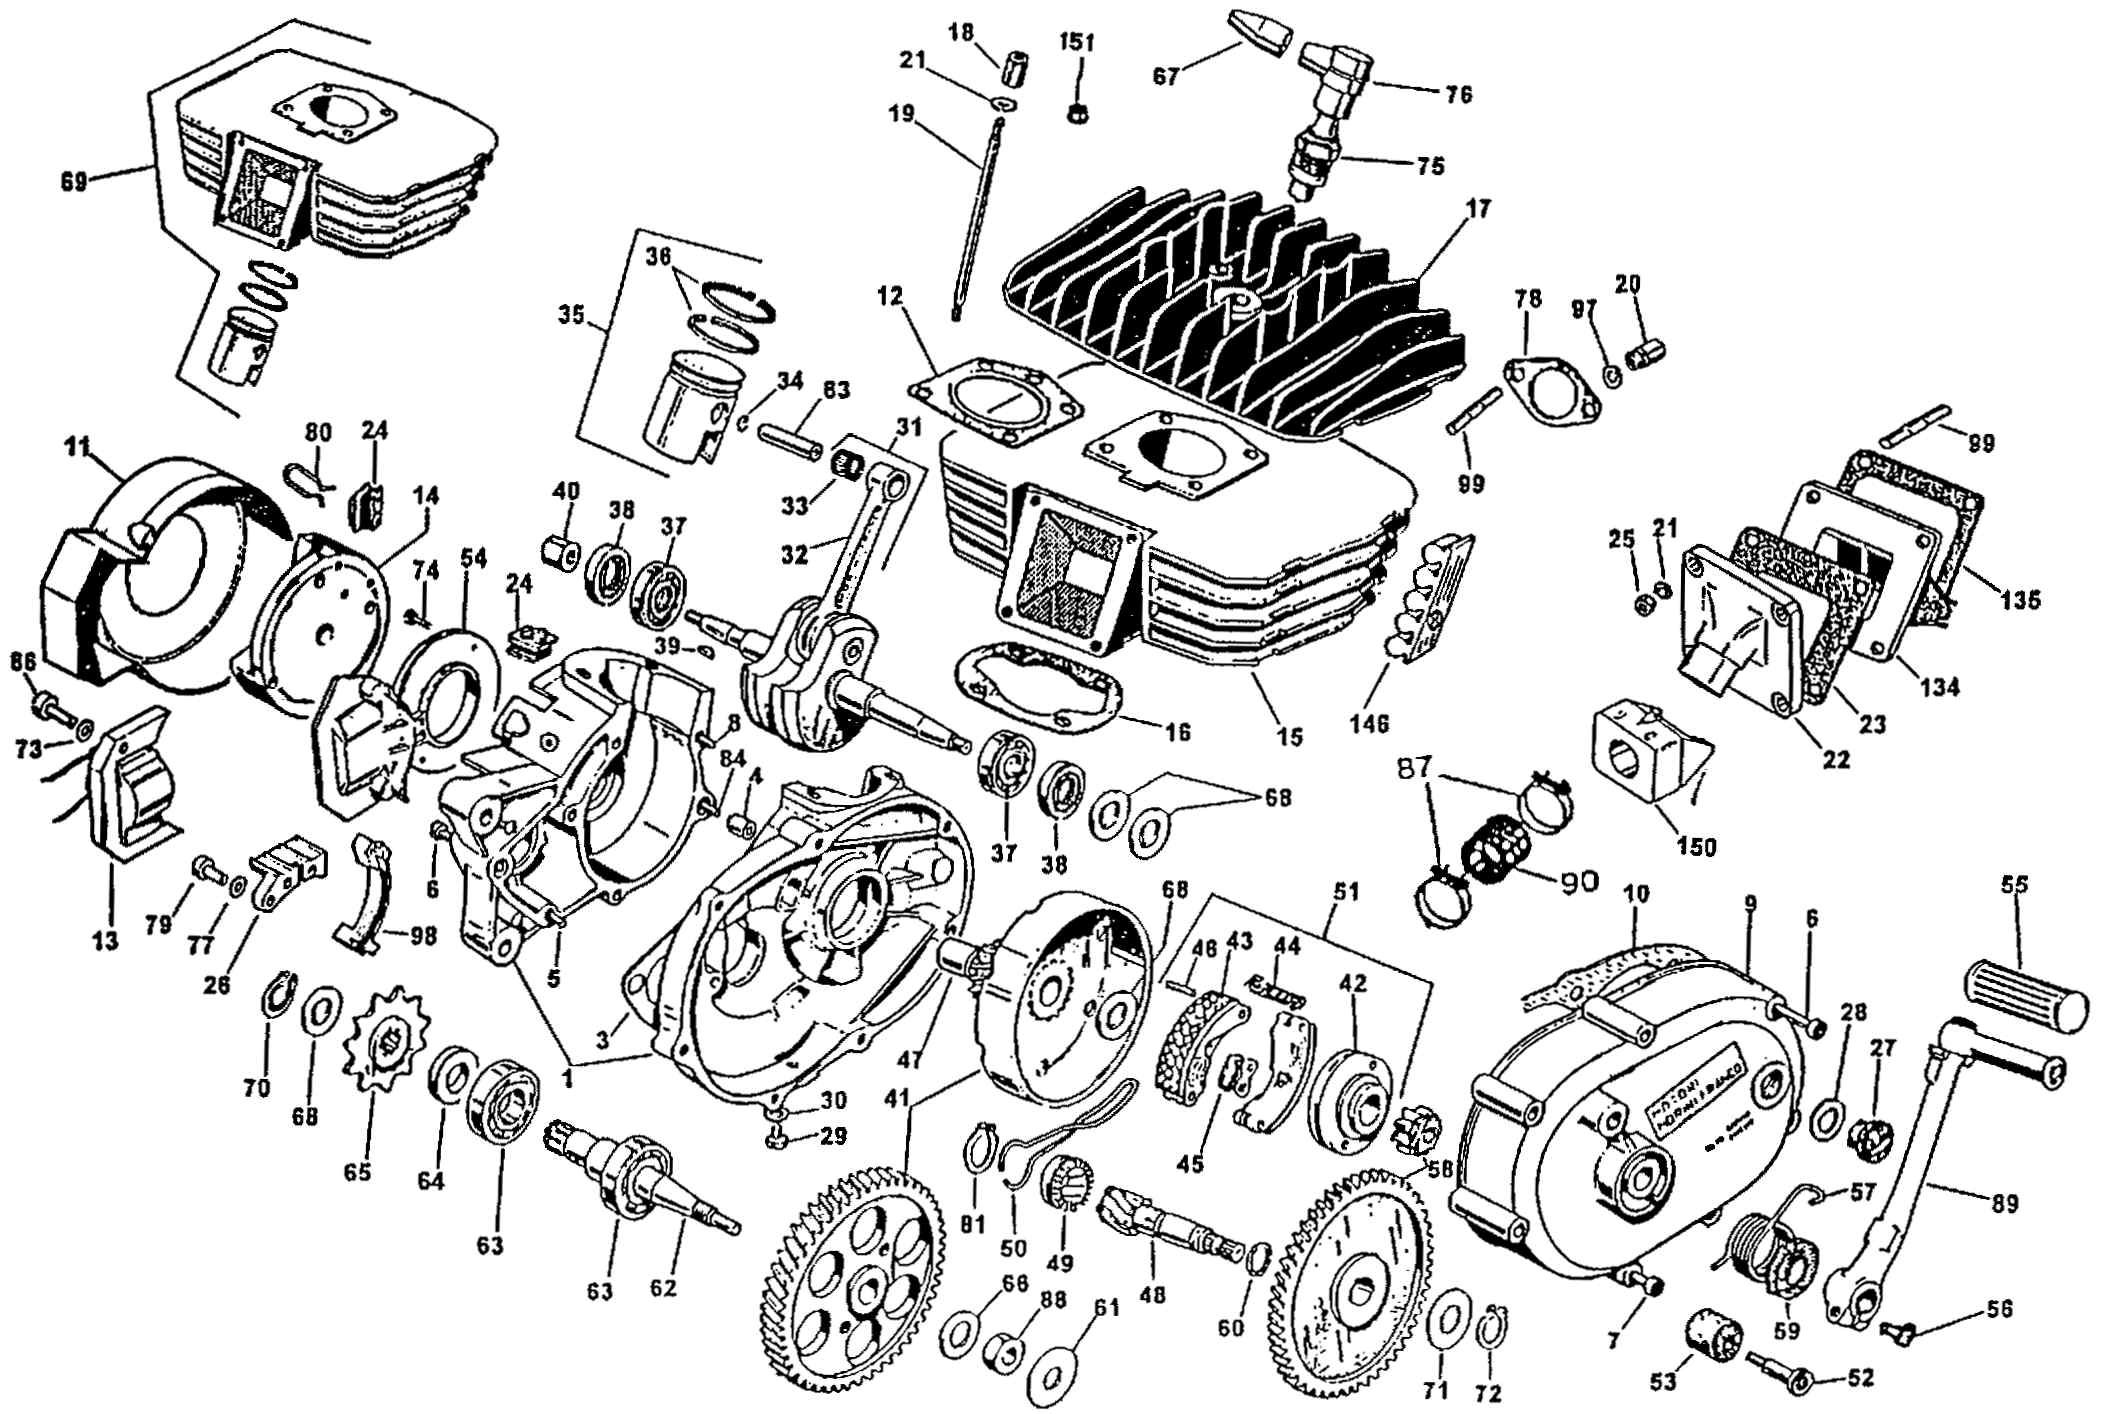 2 stroke engine schematics